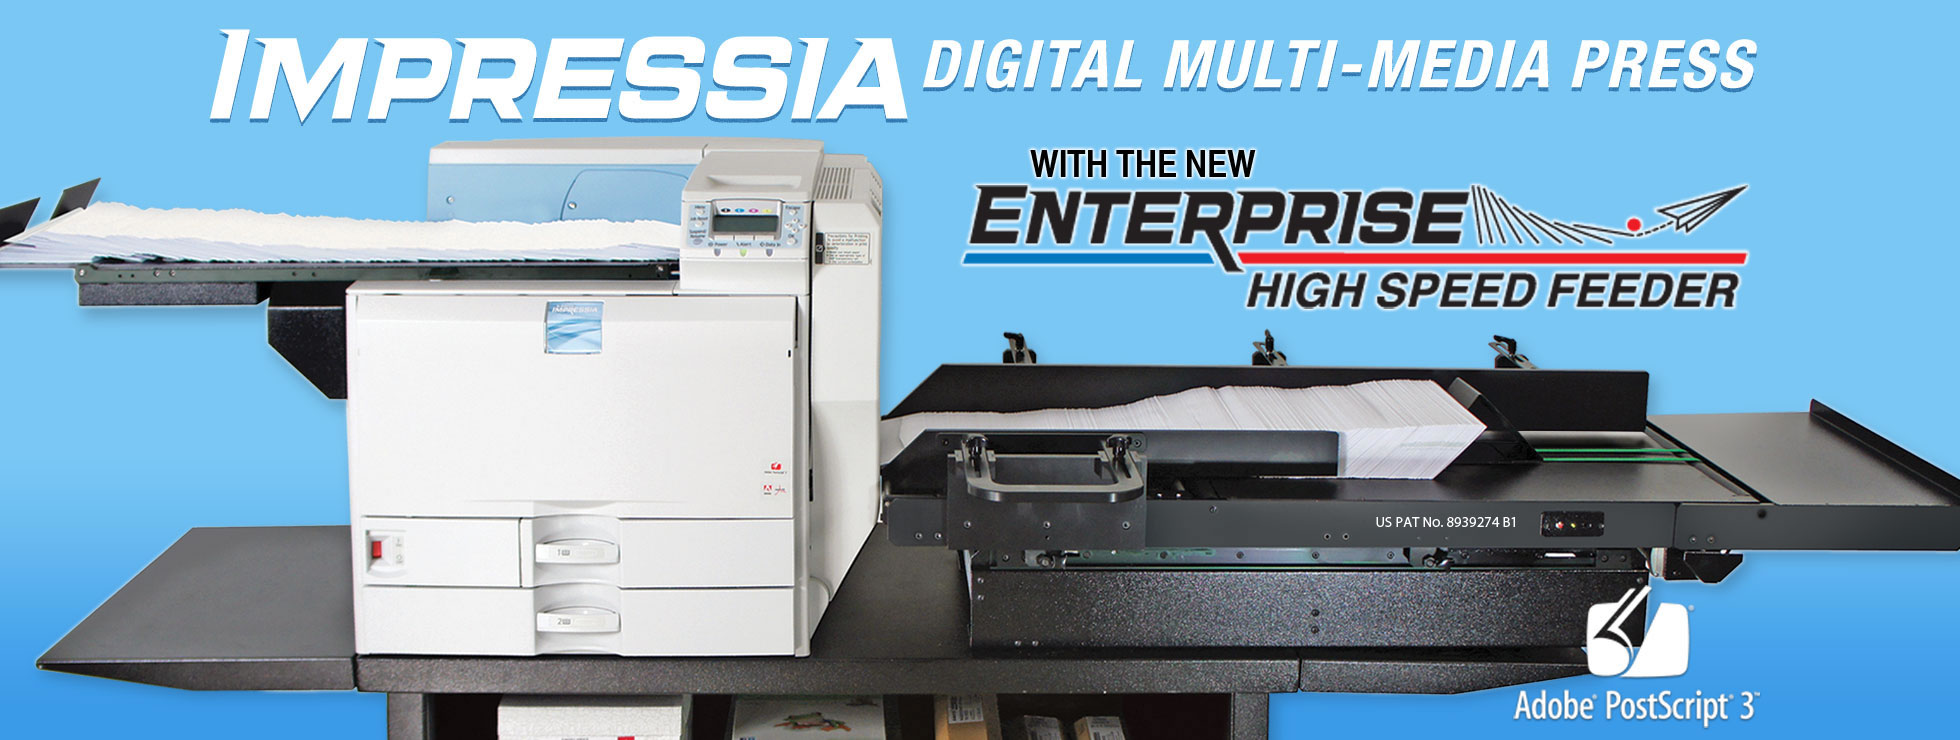 Impressia Digital Multi-Media Press with Enterprise High Speed Feeder